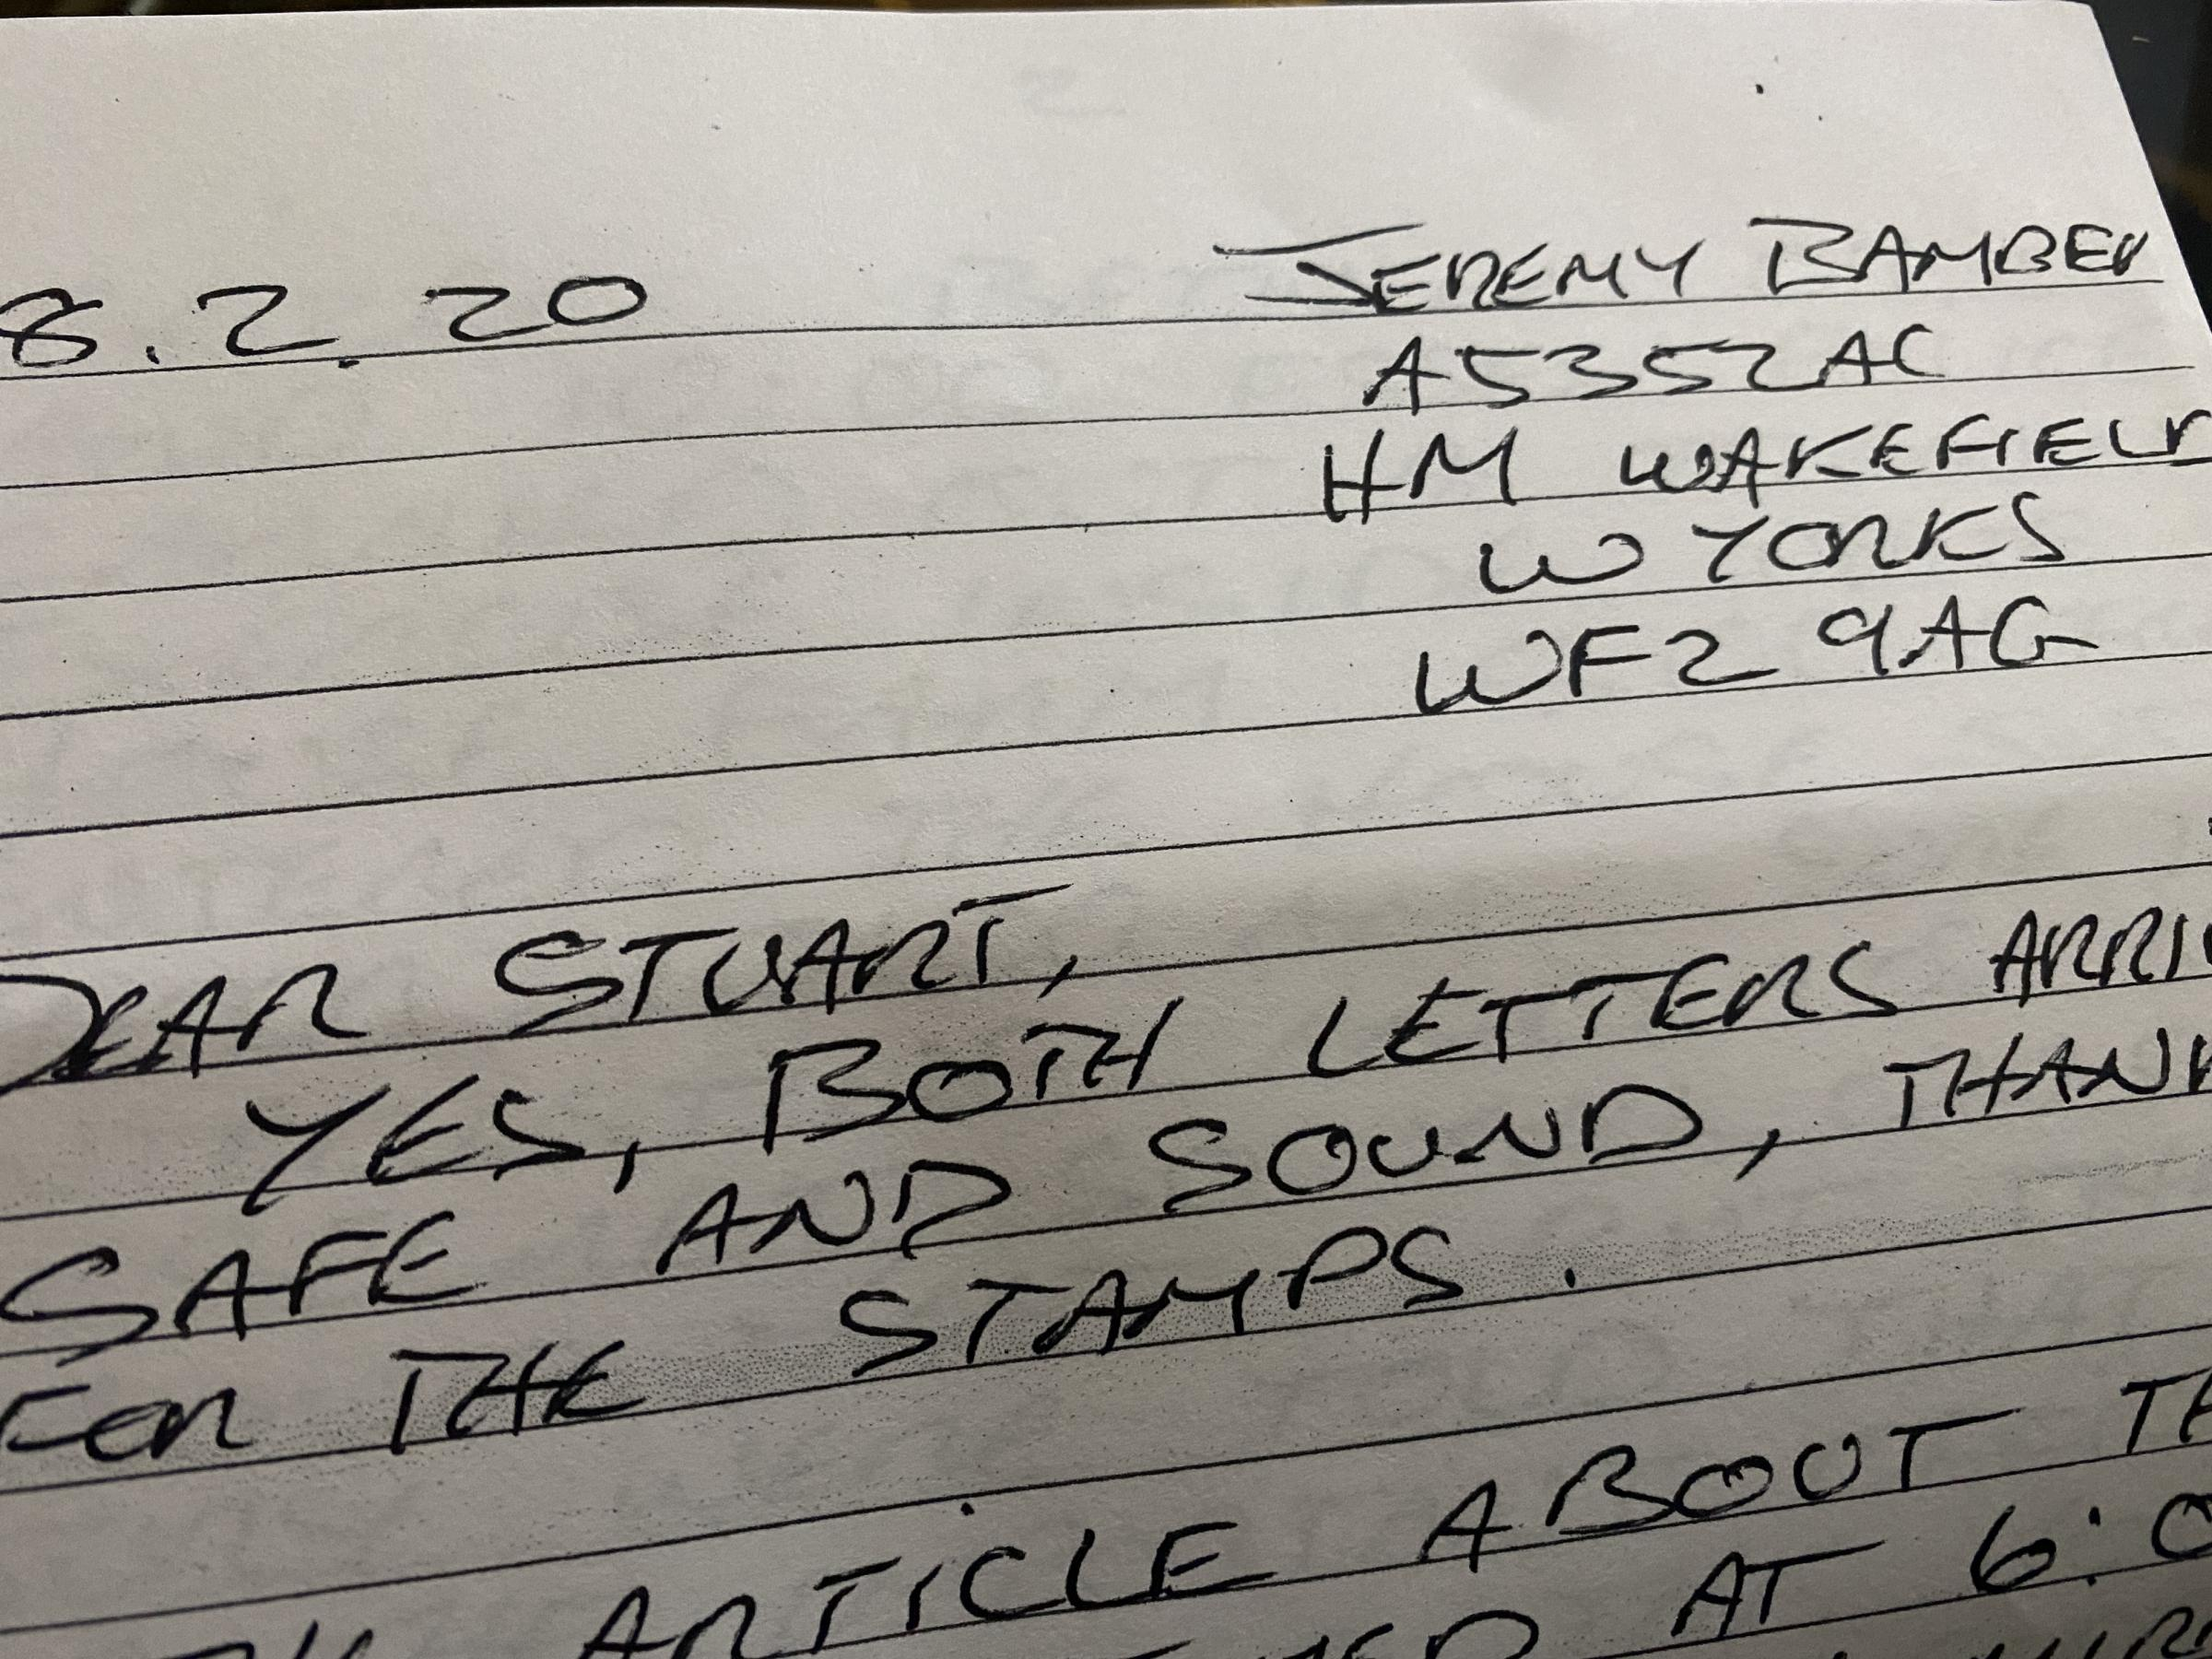 Stuart Bower has been writing letters to Bamber since 2007